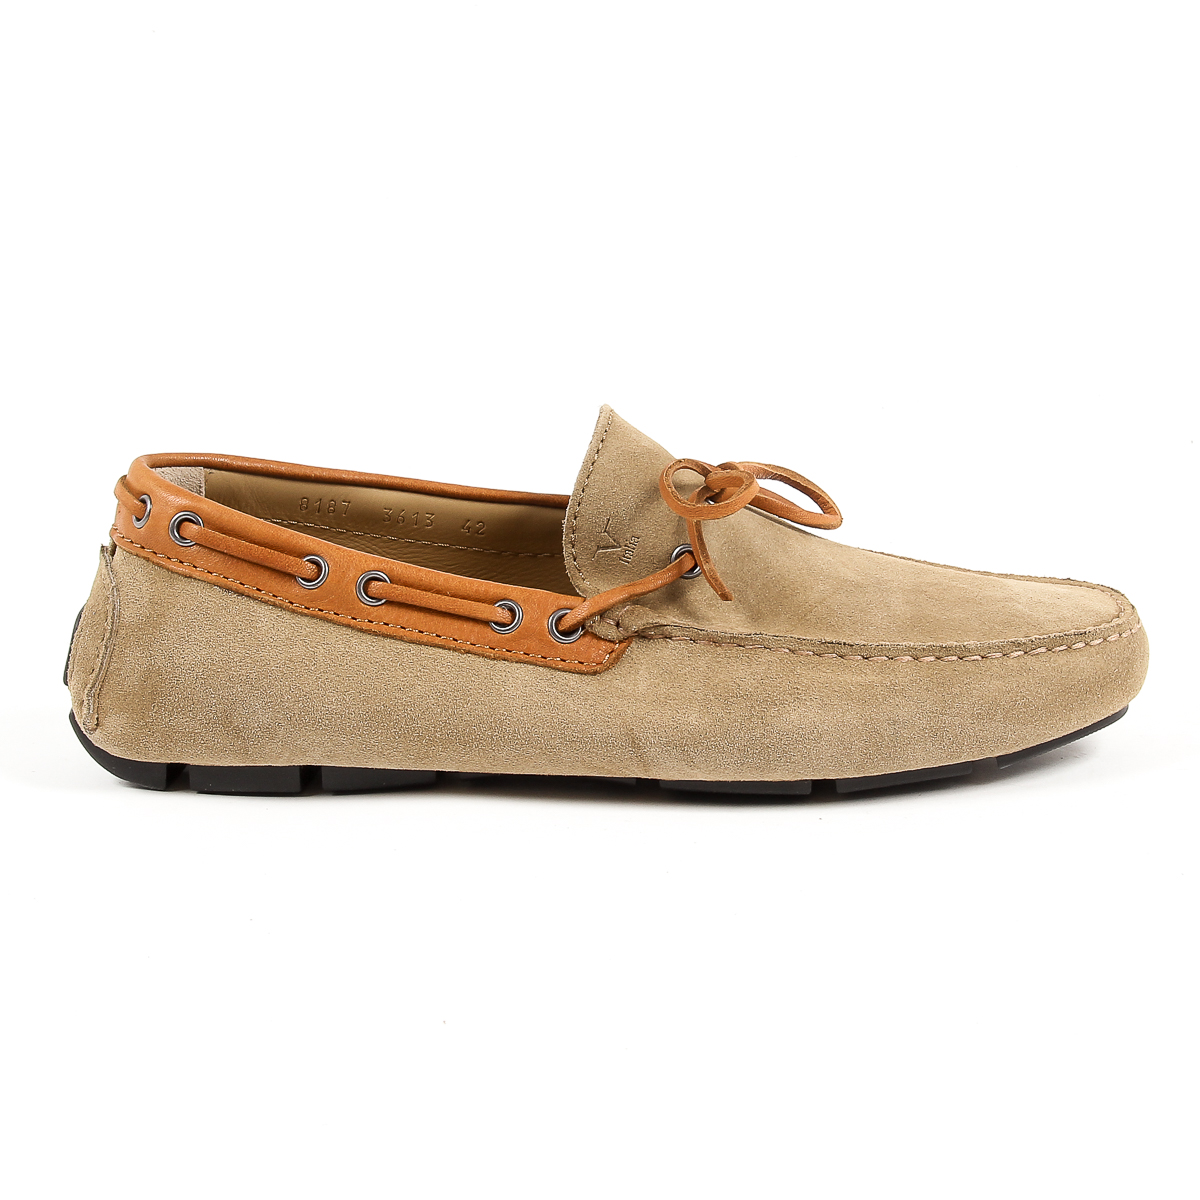 Primary image for V 1969 Italia Mens Loafer Camel MATTEW